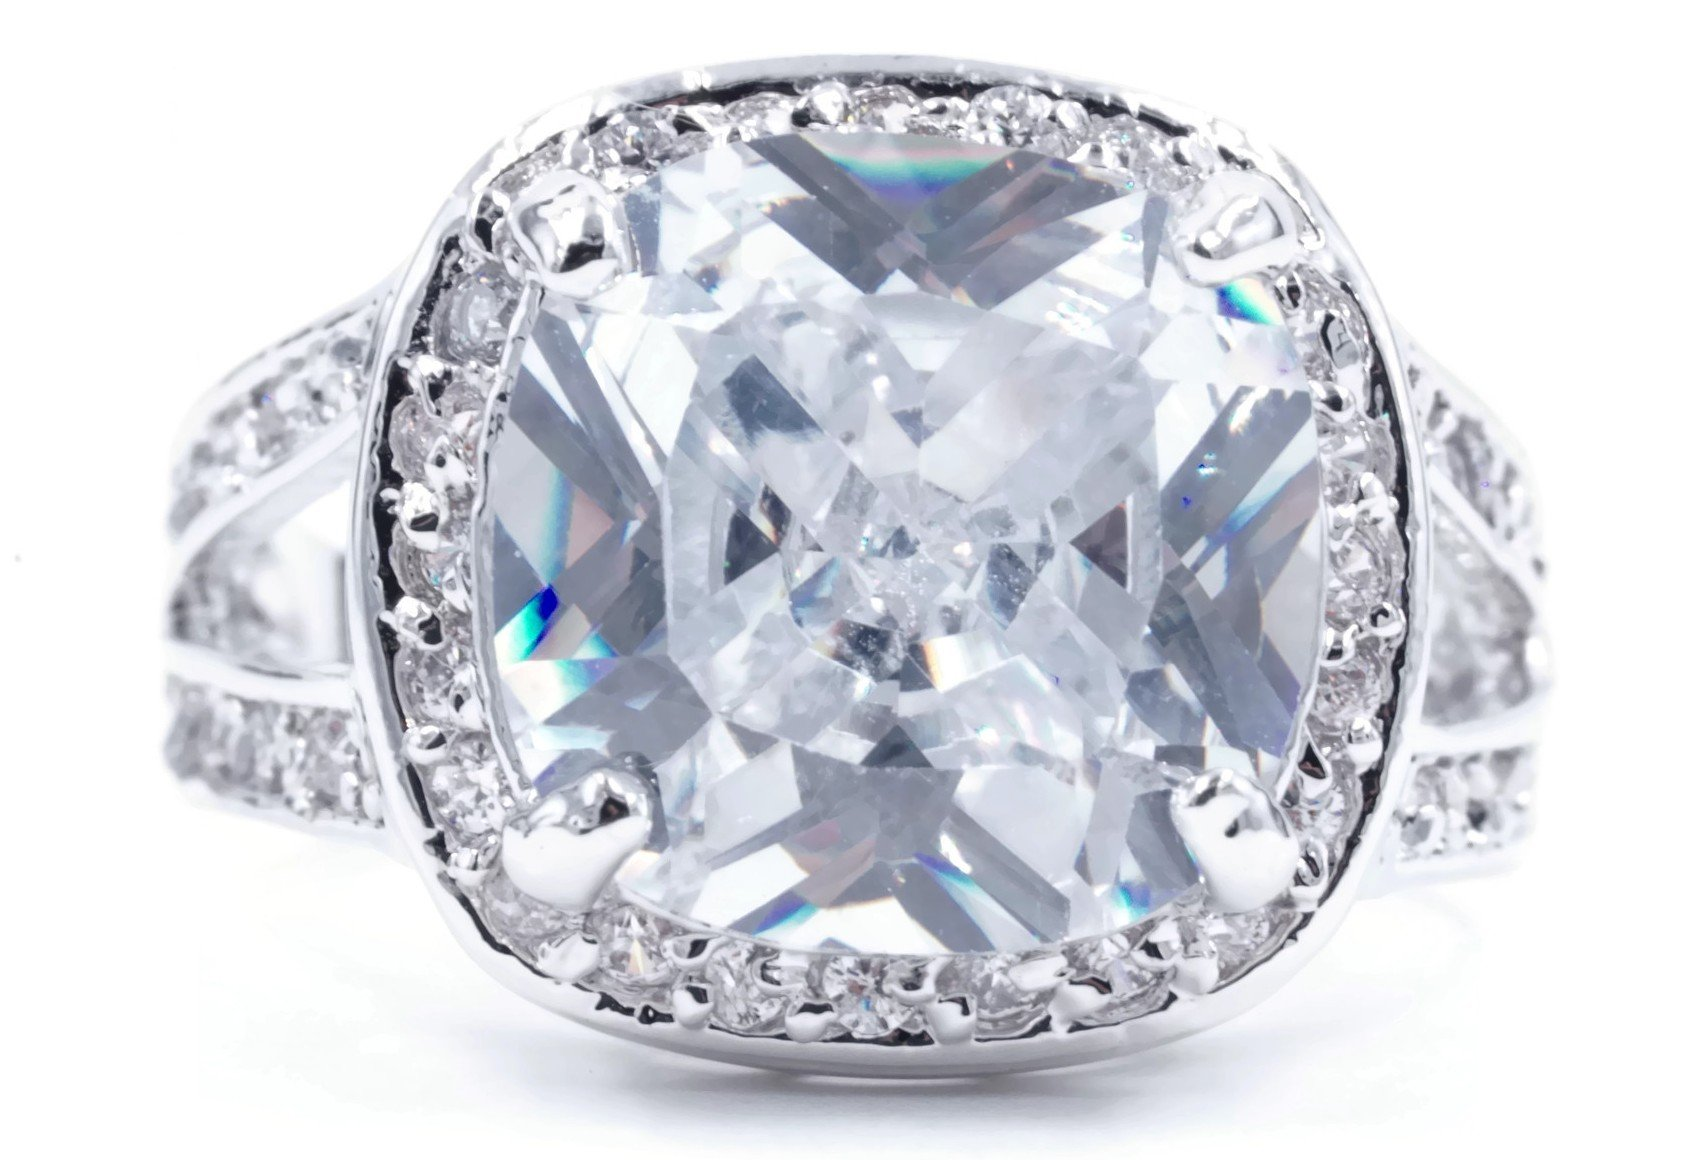 Huge Clear Cushion Cut CZ Engagement Style Fashion Ring in Silvertone Size 9 by Glamour Rings